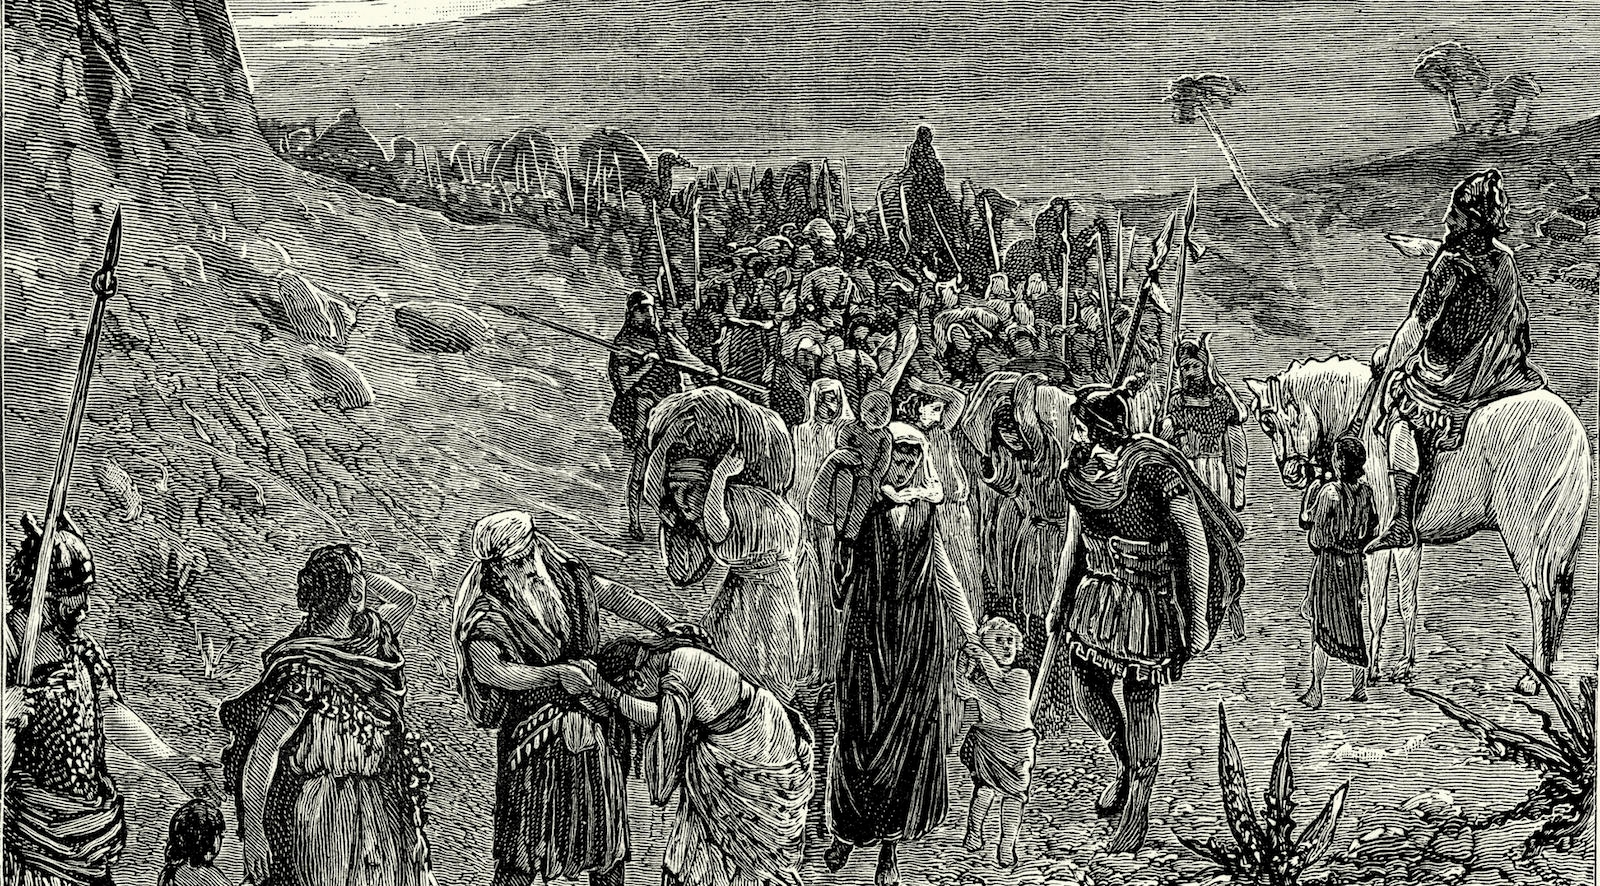 babylon jewish personals In fact, dating hammurabi in the range of c 2250–2100 was the standard in the early twentieth century and even later (jastrow 1915, pp 146, 149 rogers 1915, p 80 winckler 1907, p 59)1 even henry h halley, in his popular bible handbook, and h c leupold, in his popular commentary on genesis, were dating abraham and hammurabi to the same period (halley 1965, p 97 leupold 1942, p 447)2 today, hammurabi is dated to about 1792–1750 (roux 1992, p 506.